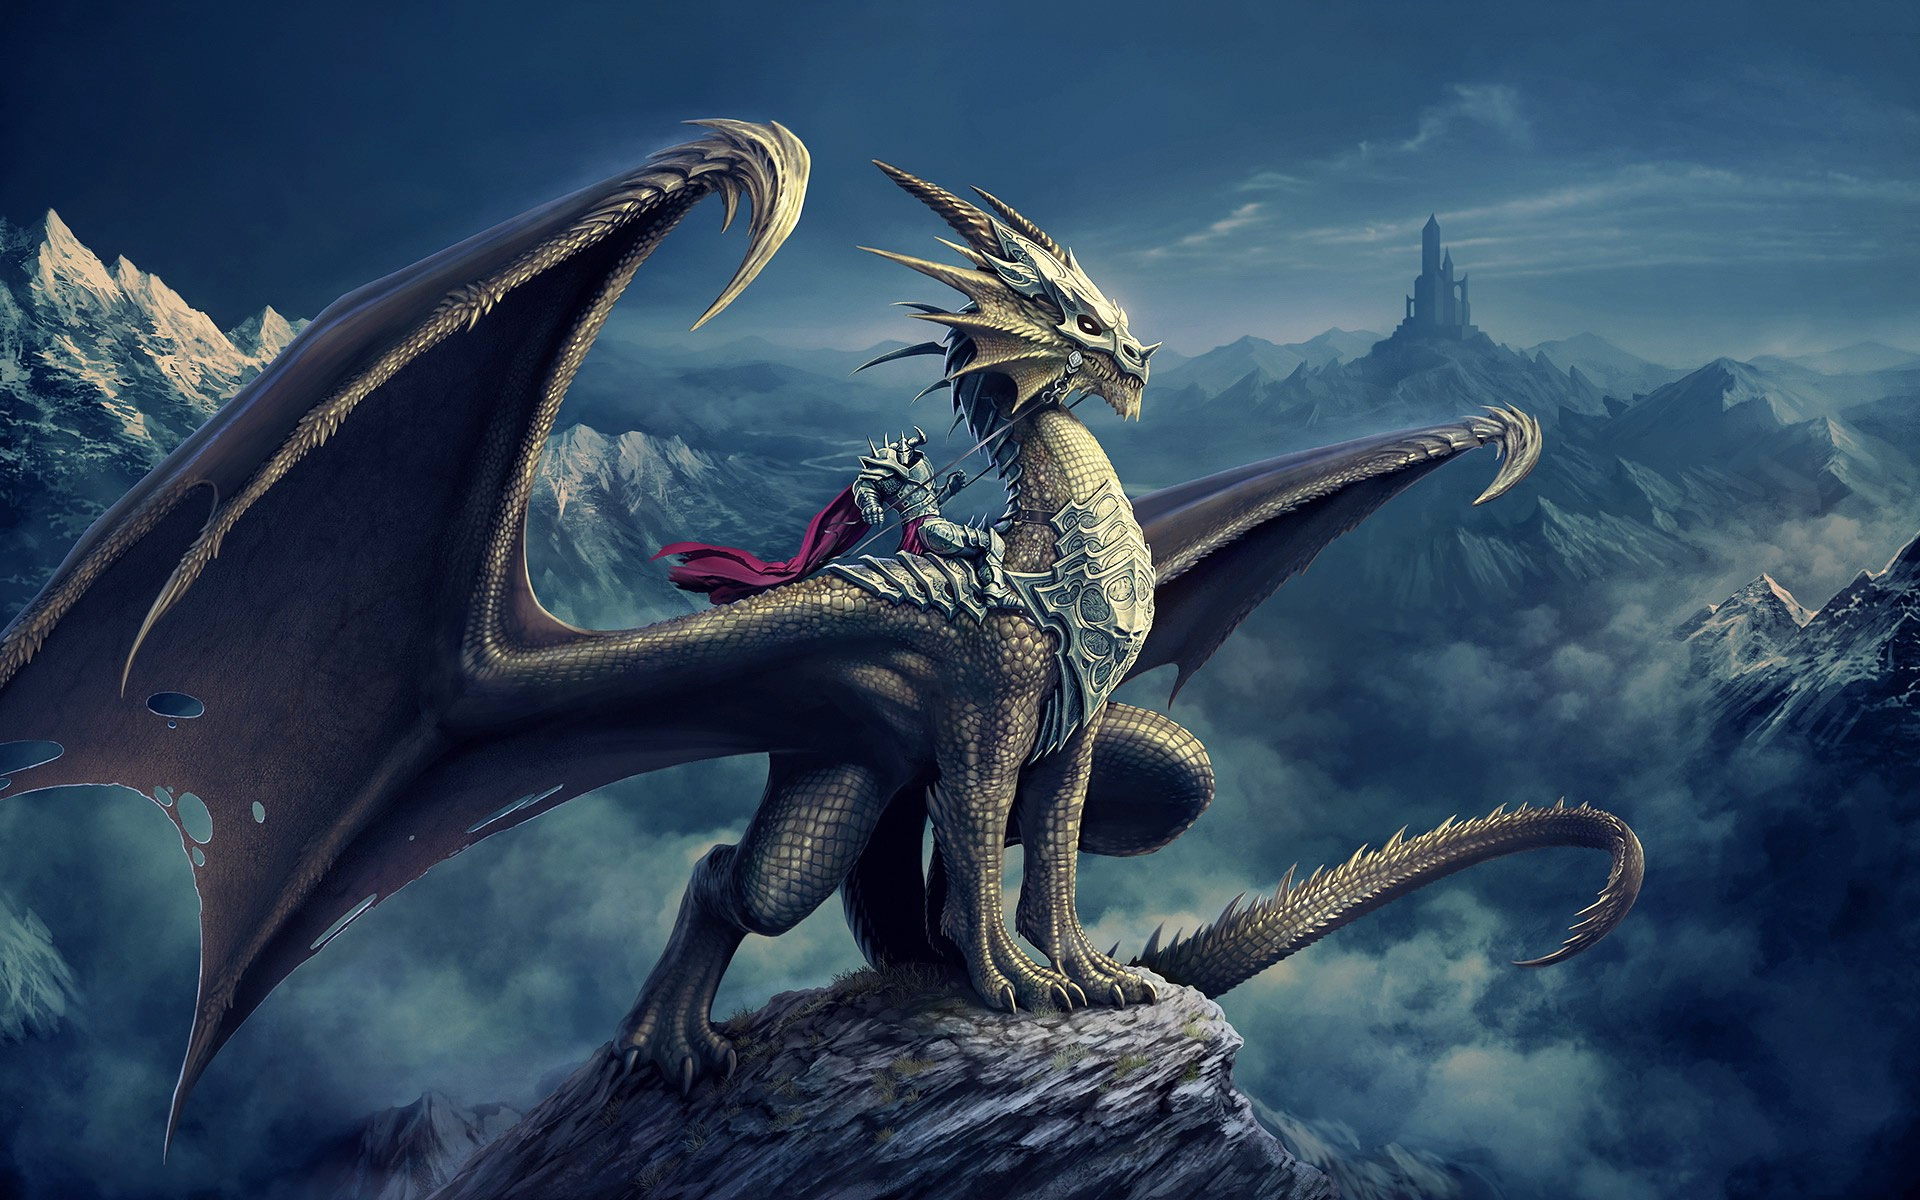 Dragon HD Wallpapers Dragon Pictures Cool Wallpapers 1920x1200